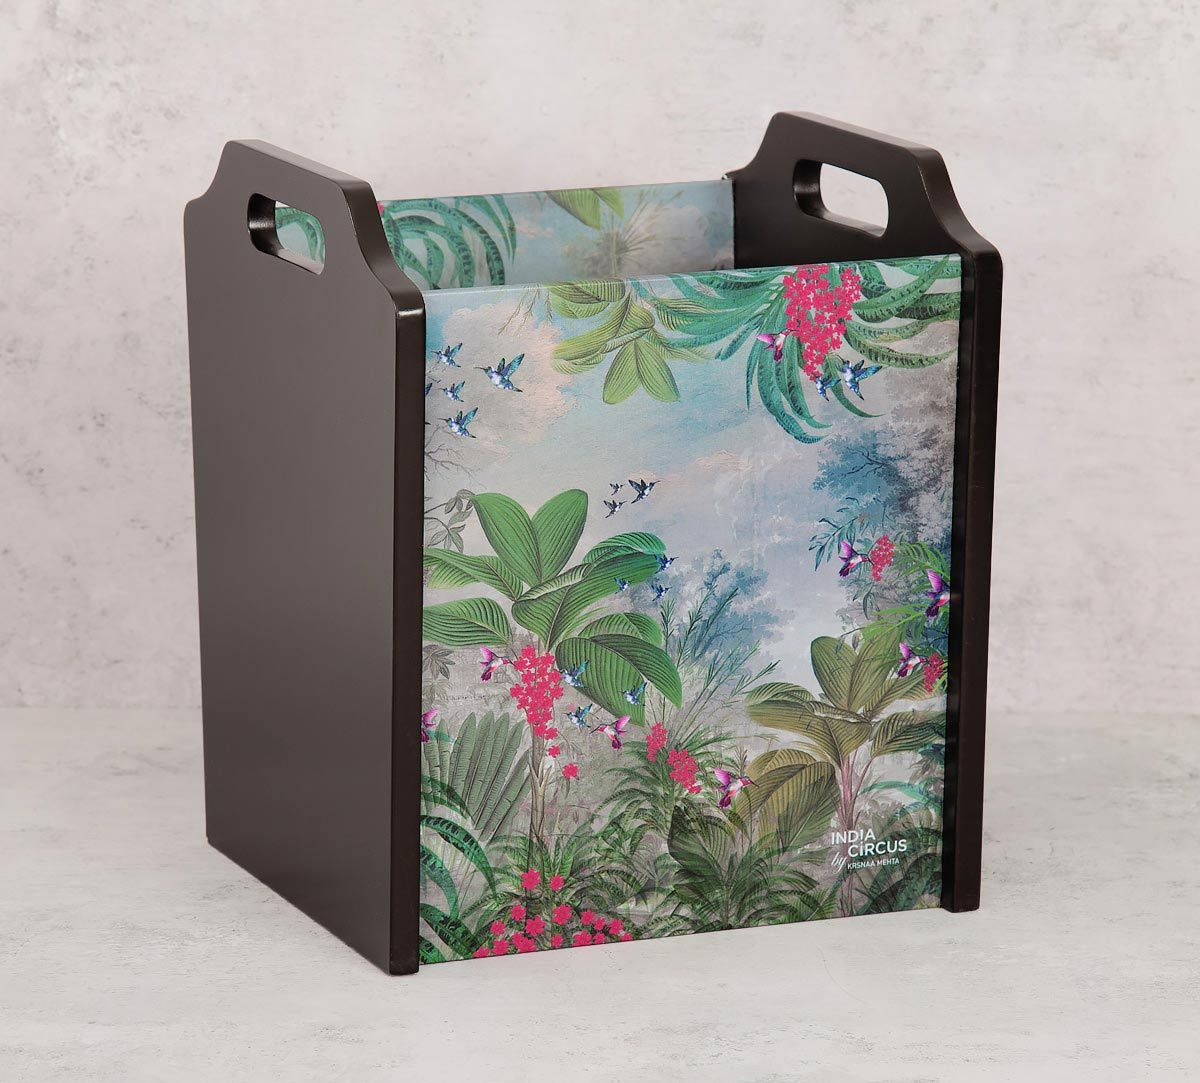 India Circus Tropical View Magazine Holder